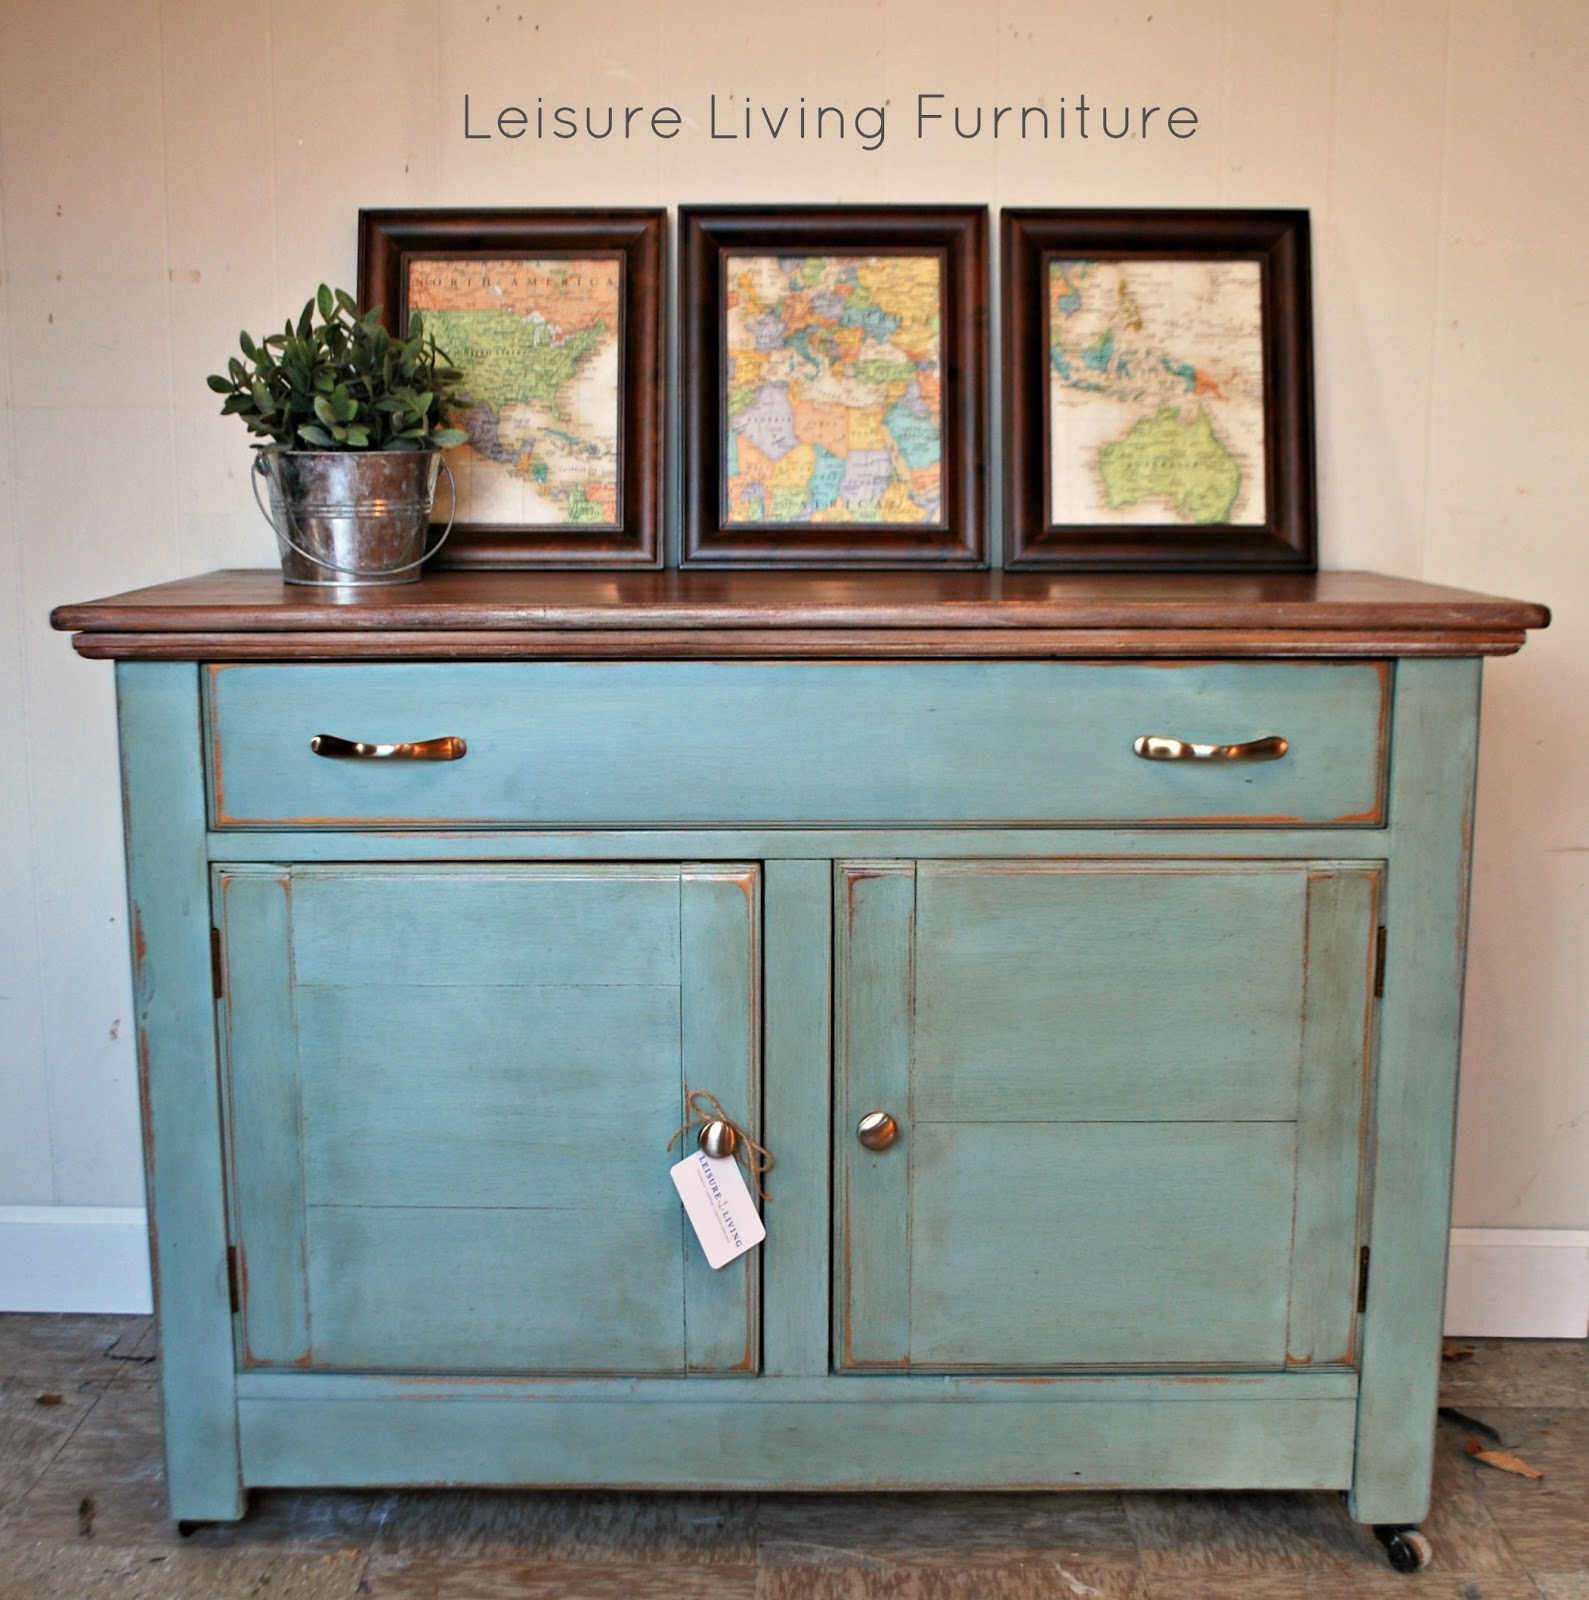 Leisure Living Entryway Cabinet